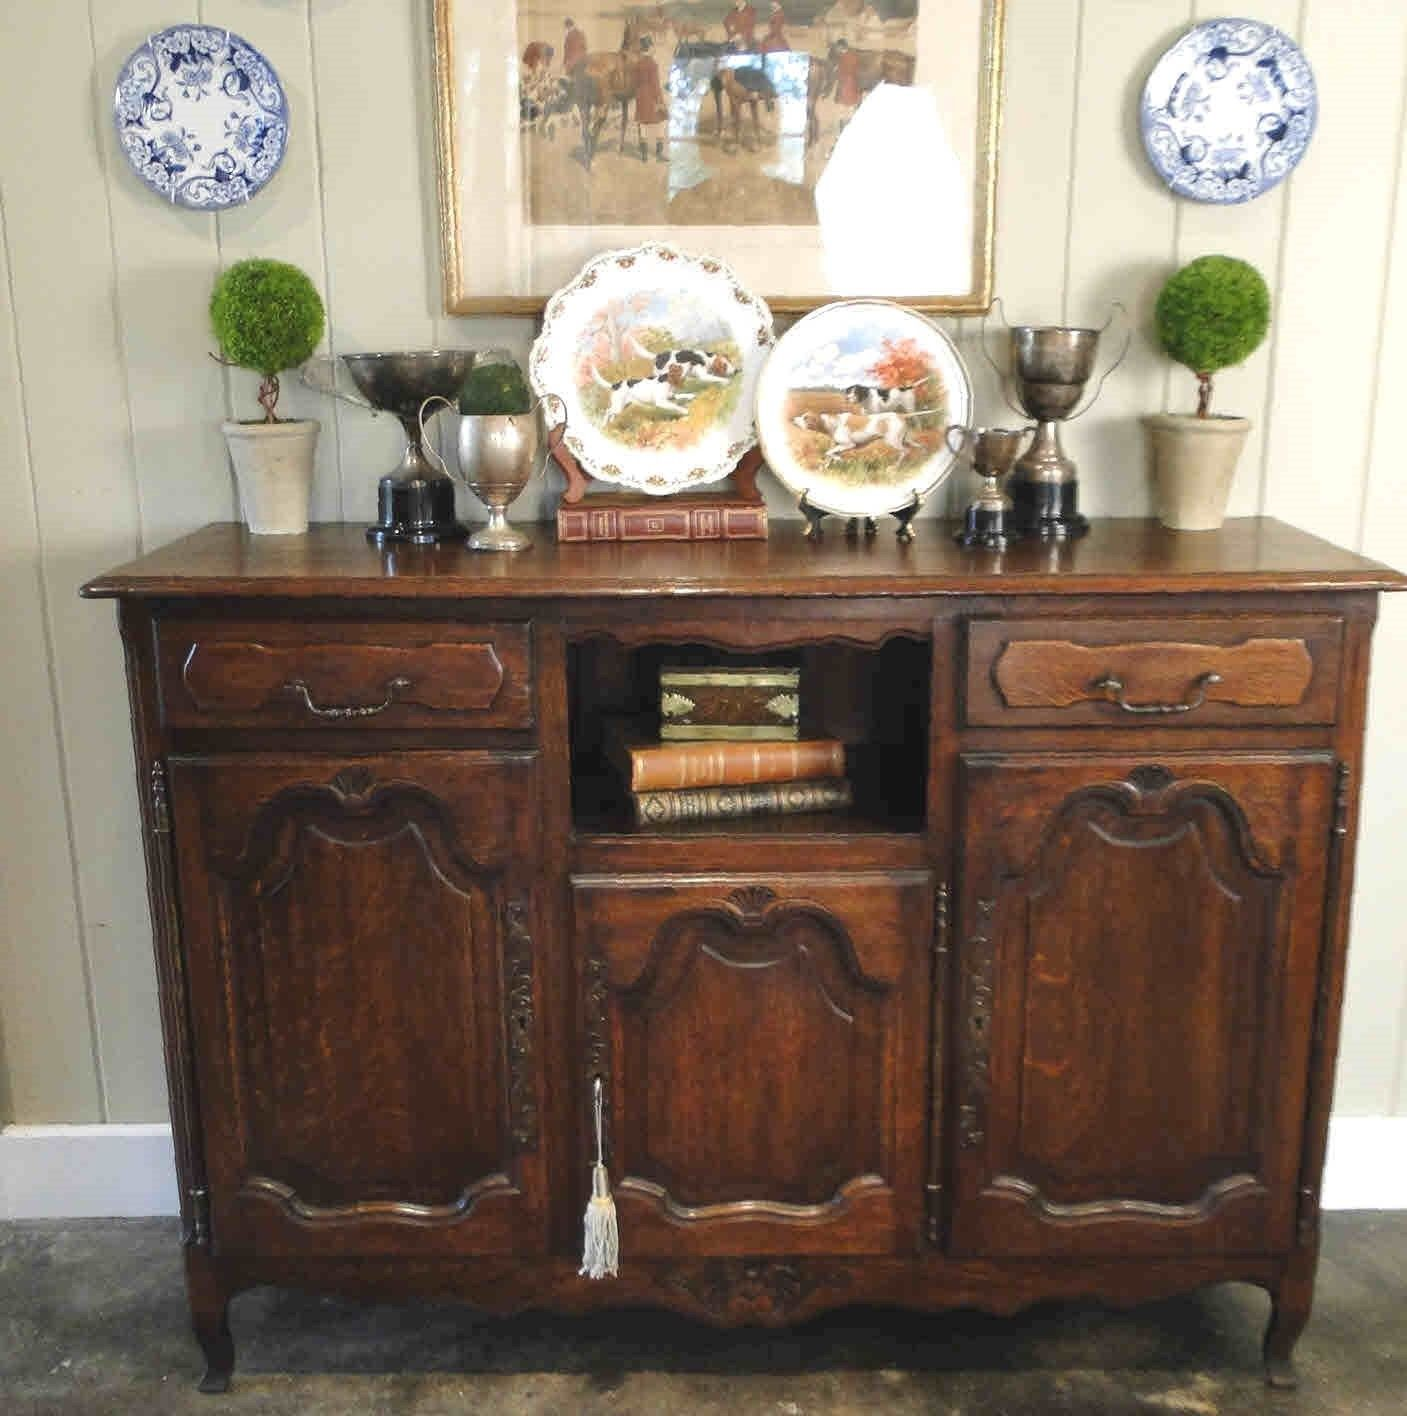 Antique French Country Buffet Sideboard Server 3 Door Carved Oak Shell Key